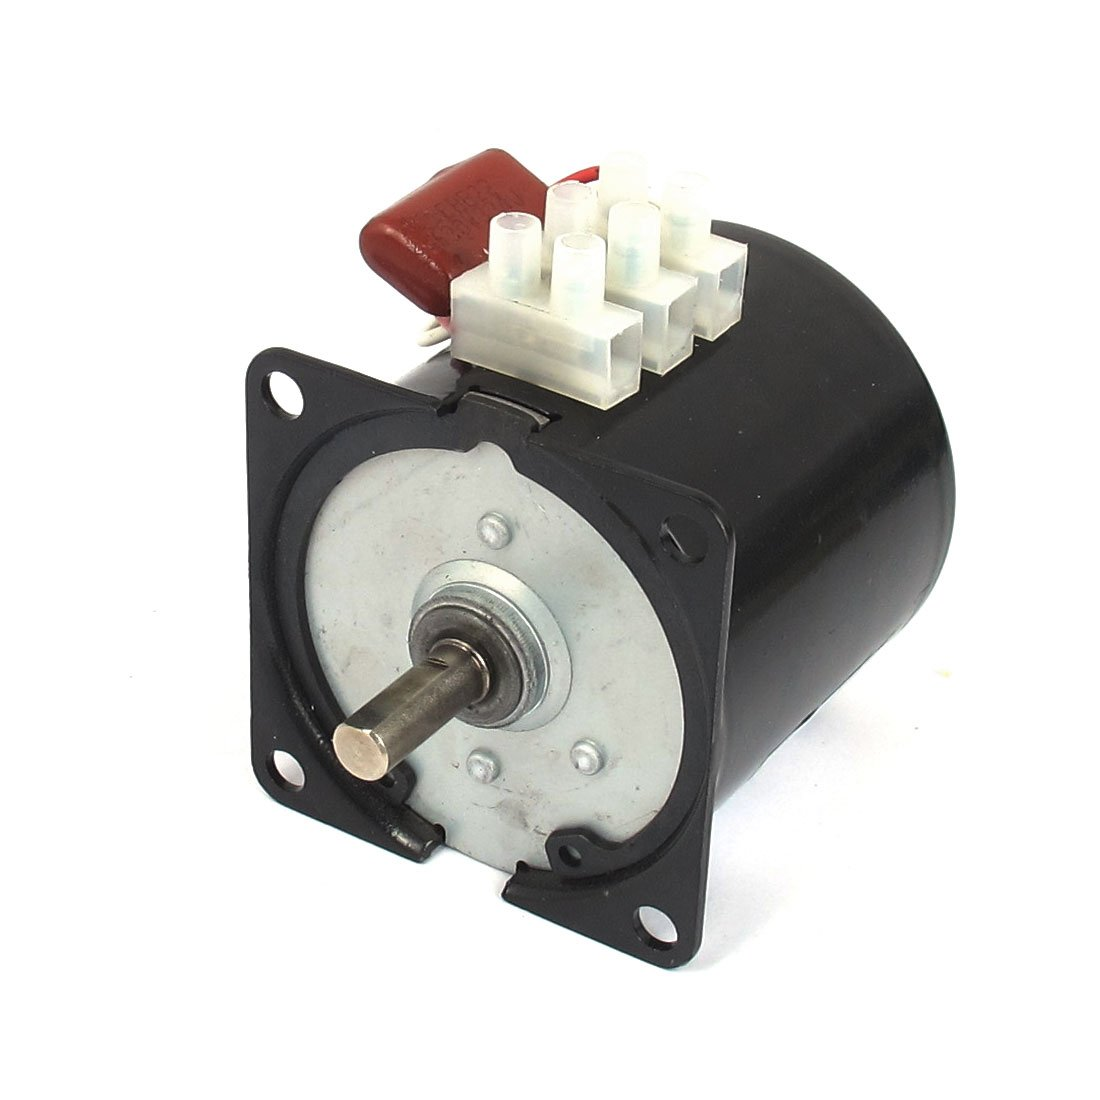 sourcingmap AC 220V 10RPM 50Hz Electric Machine Gear Motor 60KTYZ w Capacitor a12101600ux0139